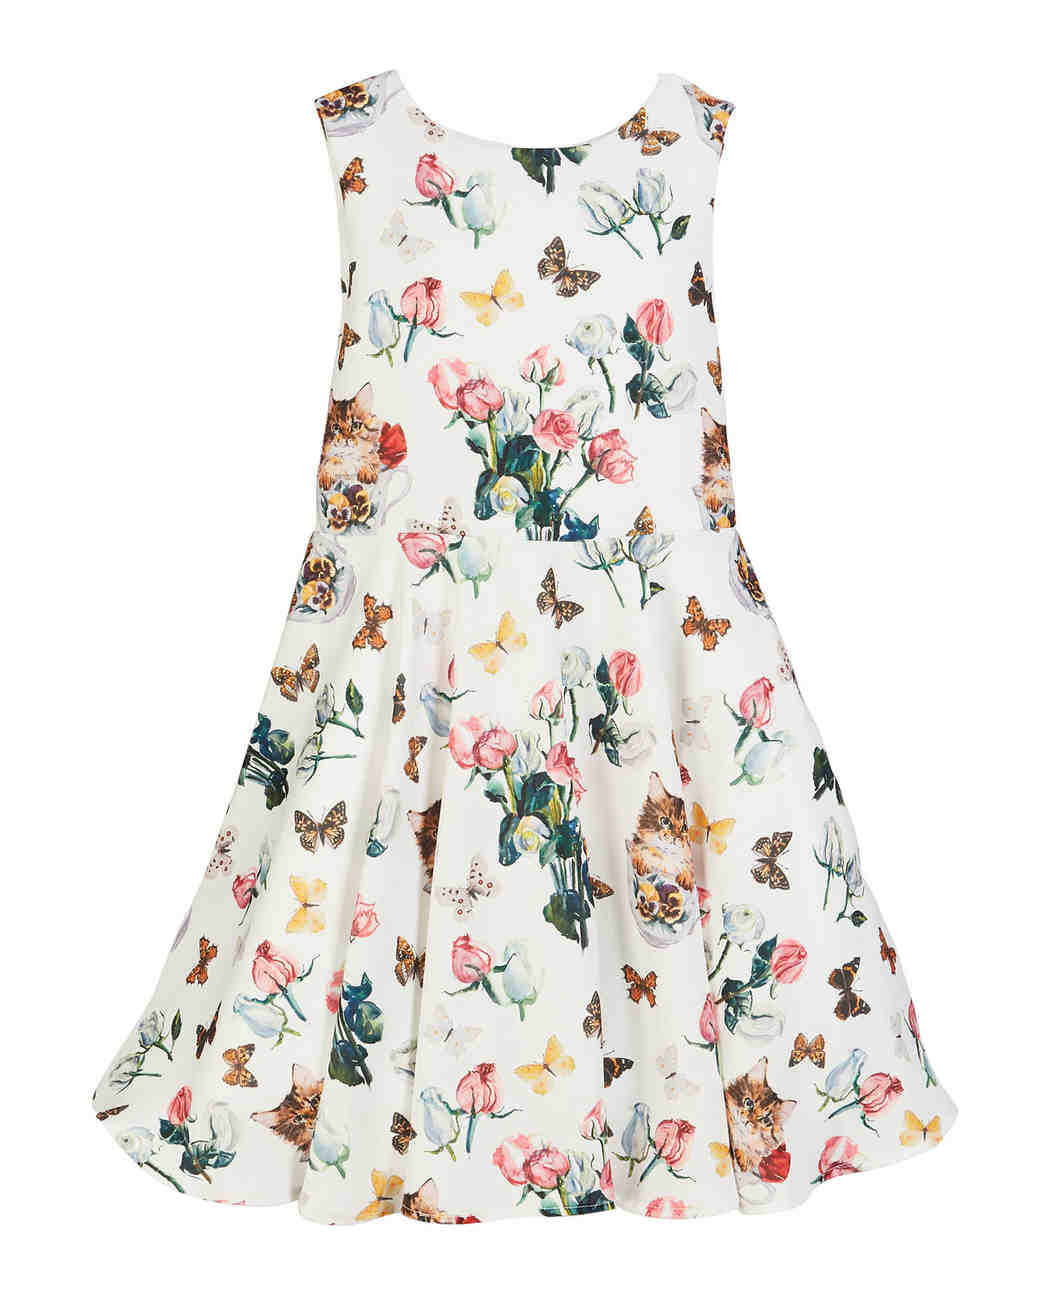 Charabia Mixed Floral Dress